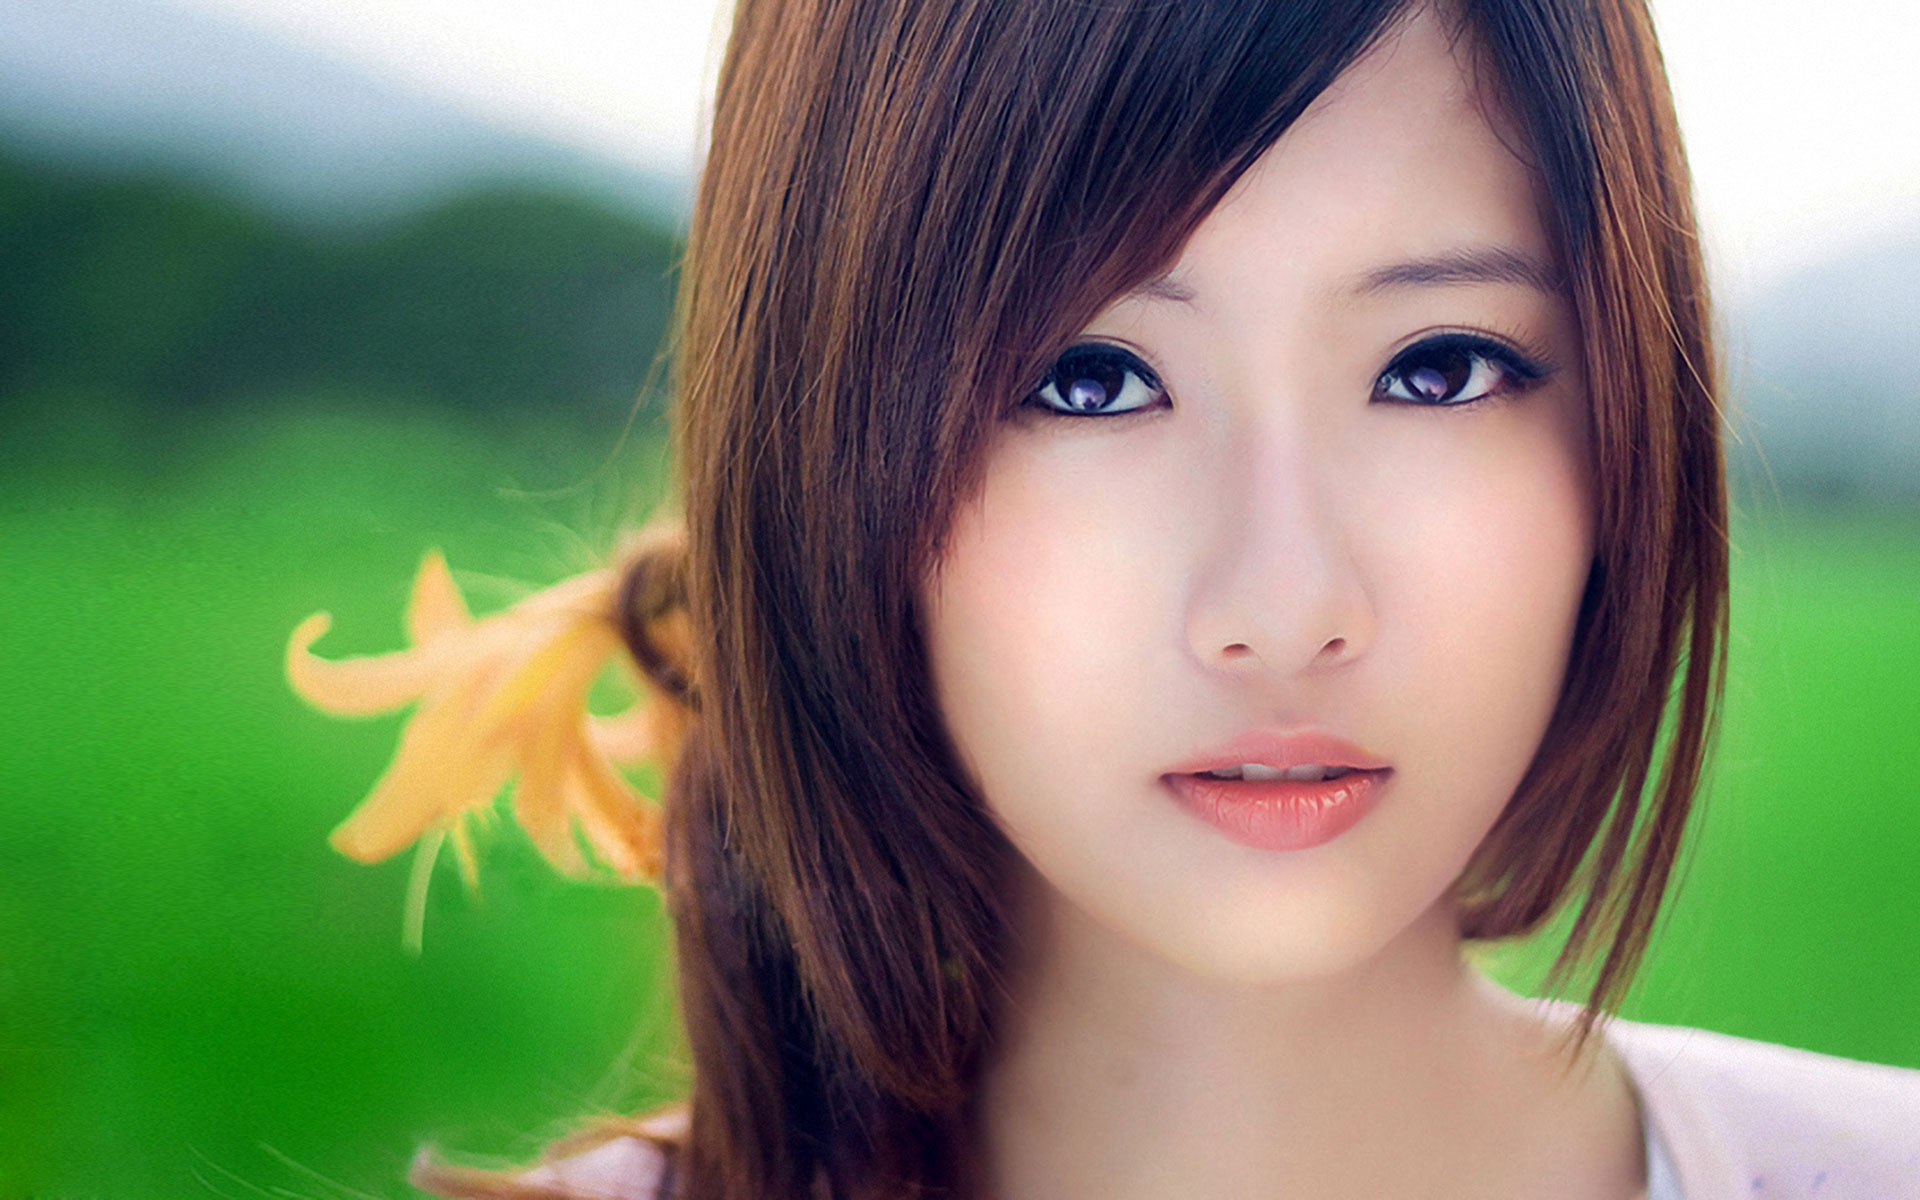 Cute Girl HD Wallpaper  Wallpup.com